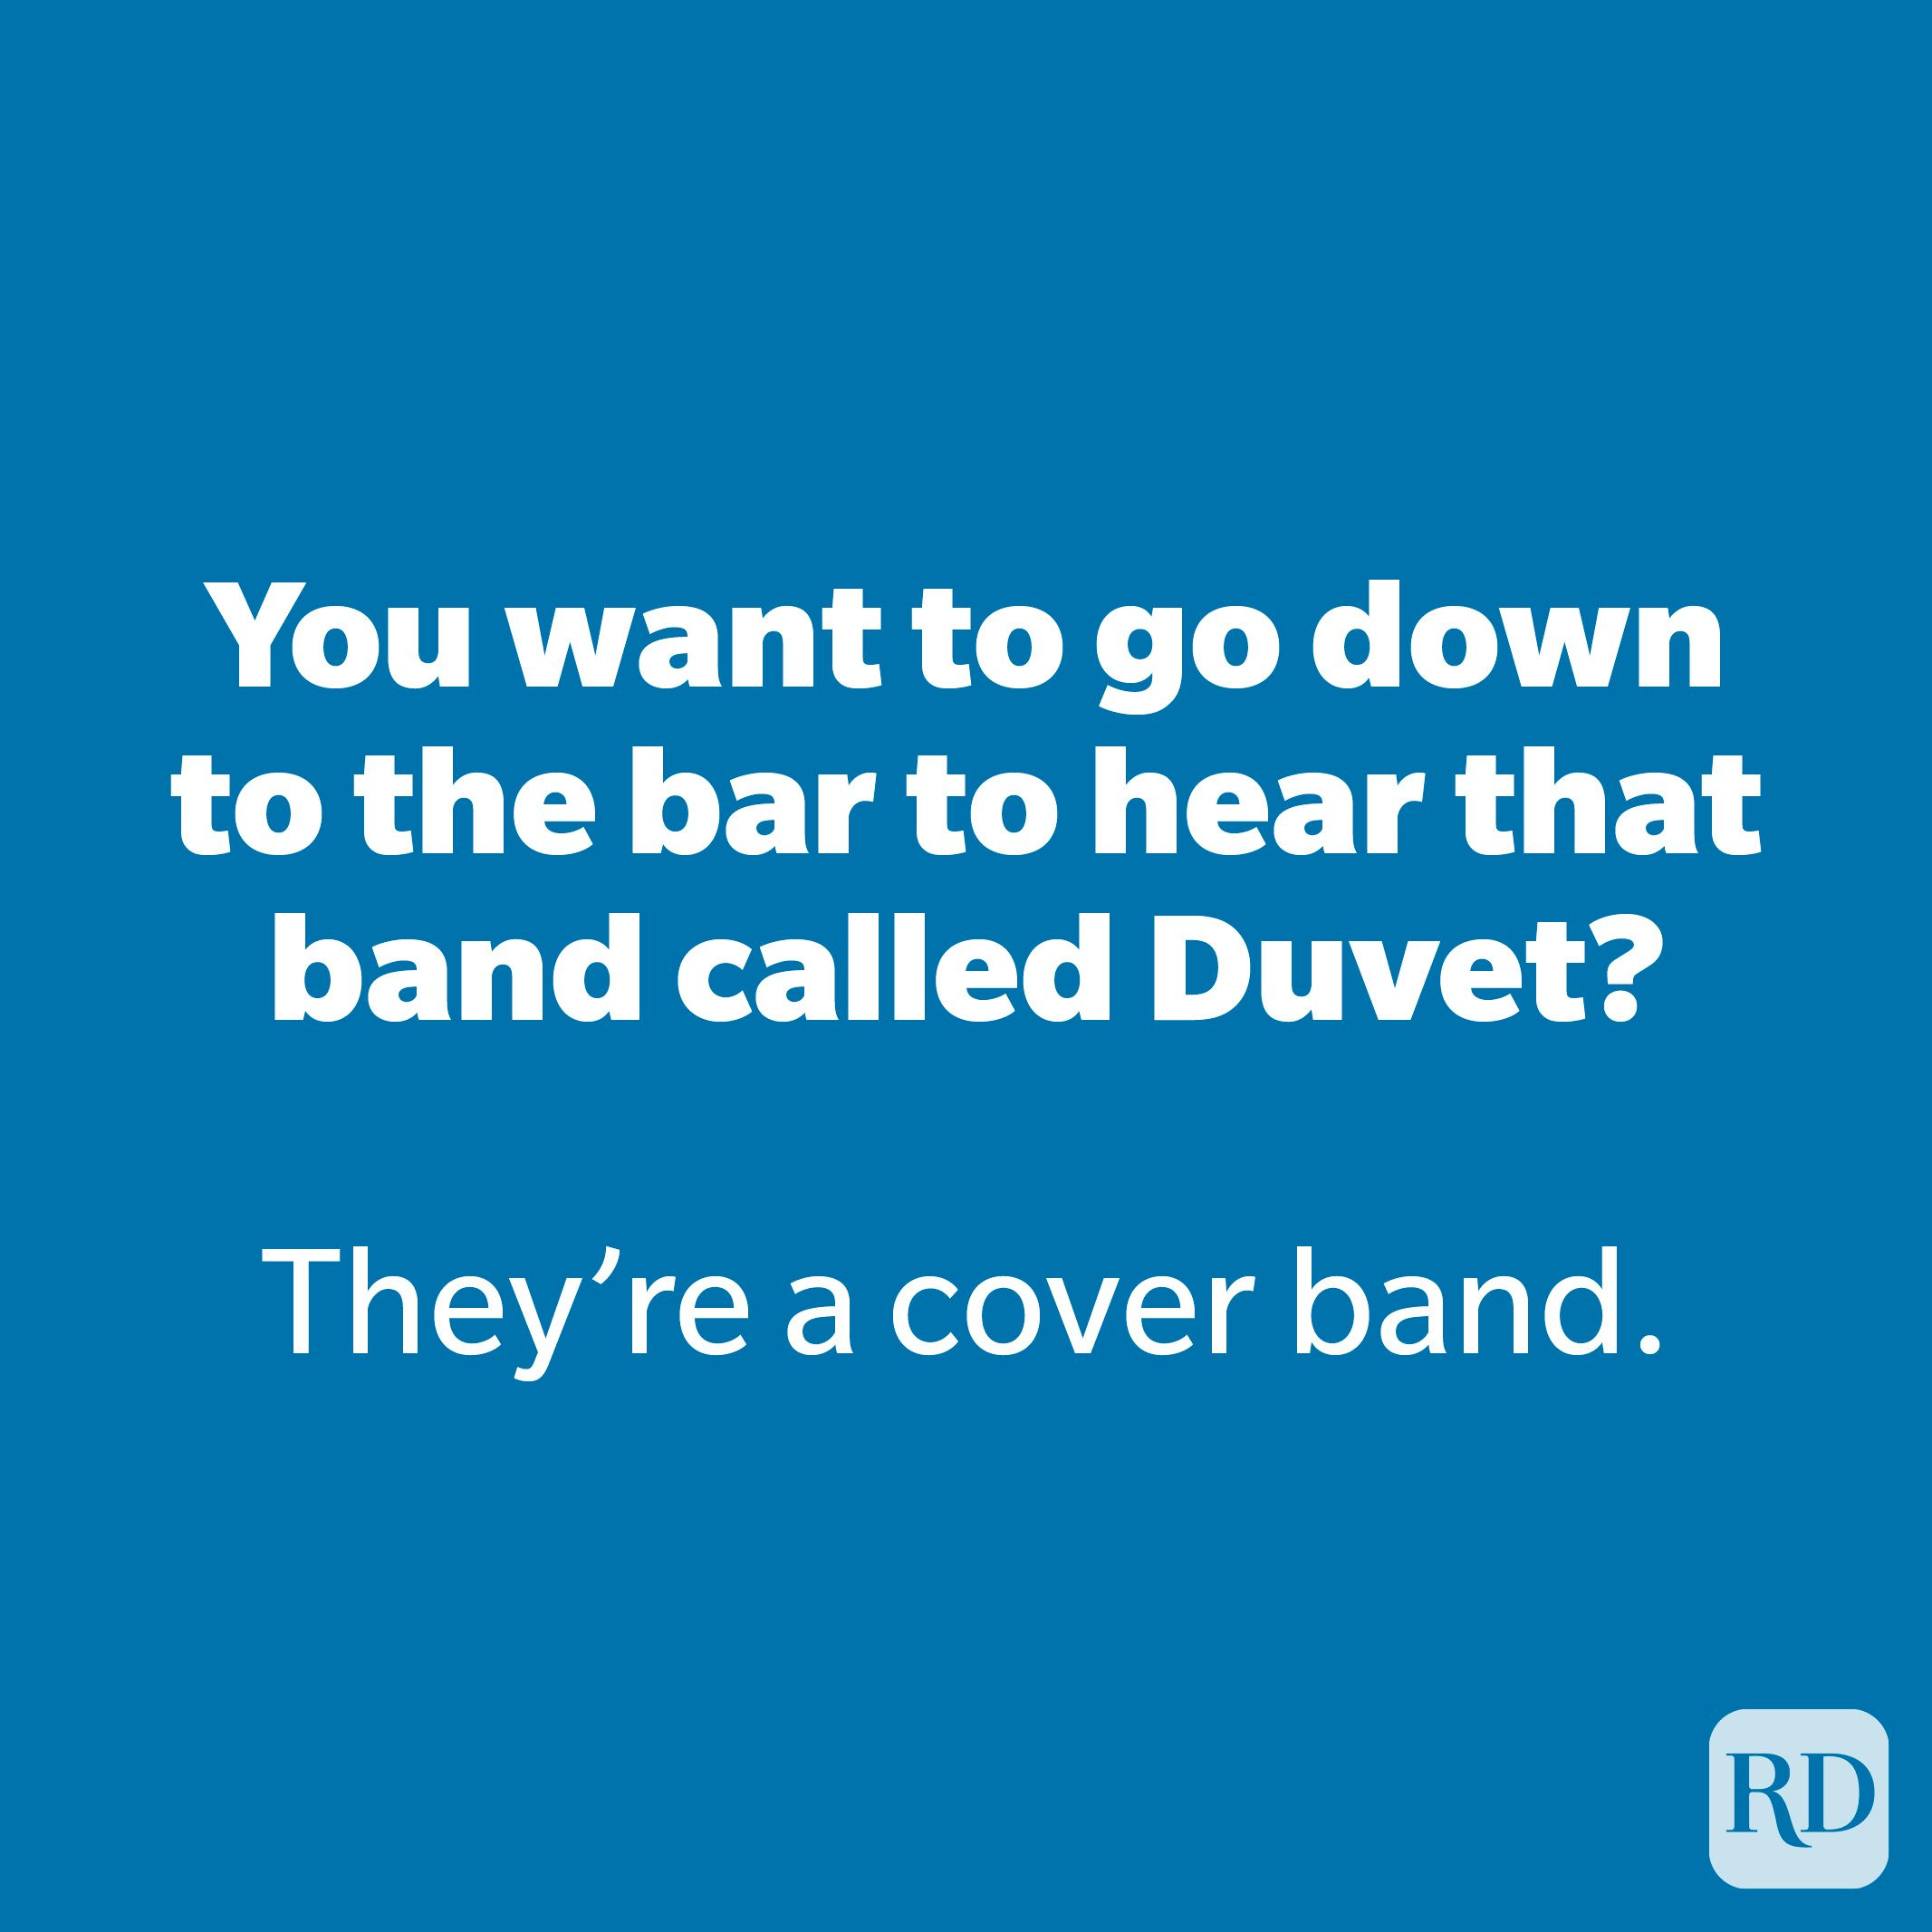 You want to go down to the bar to hear that band called Duvet?